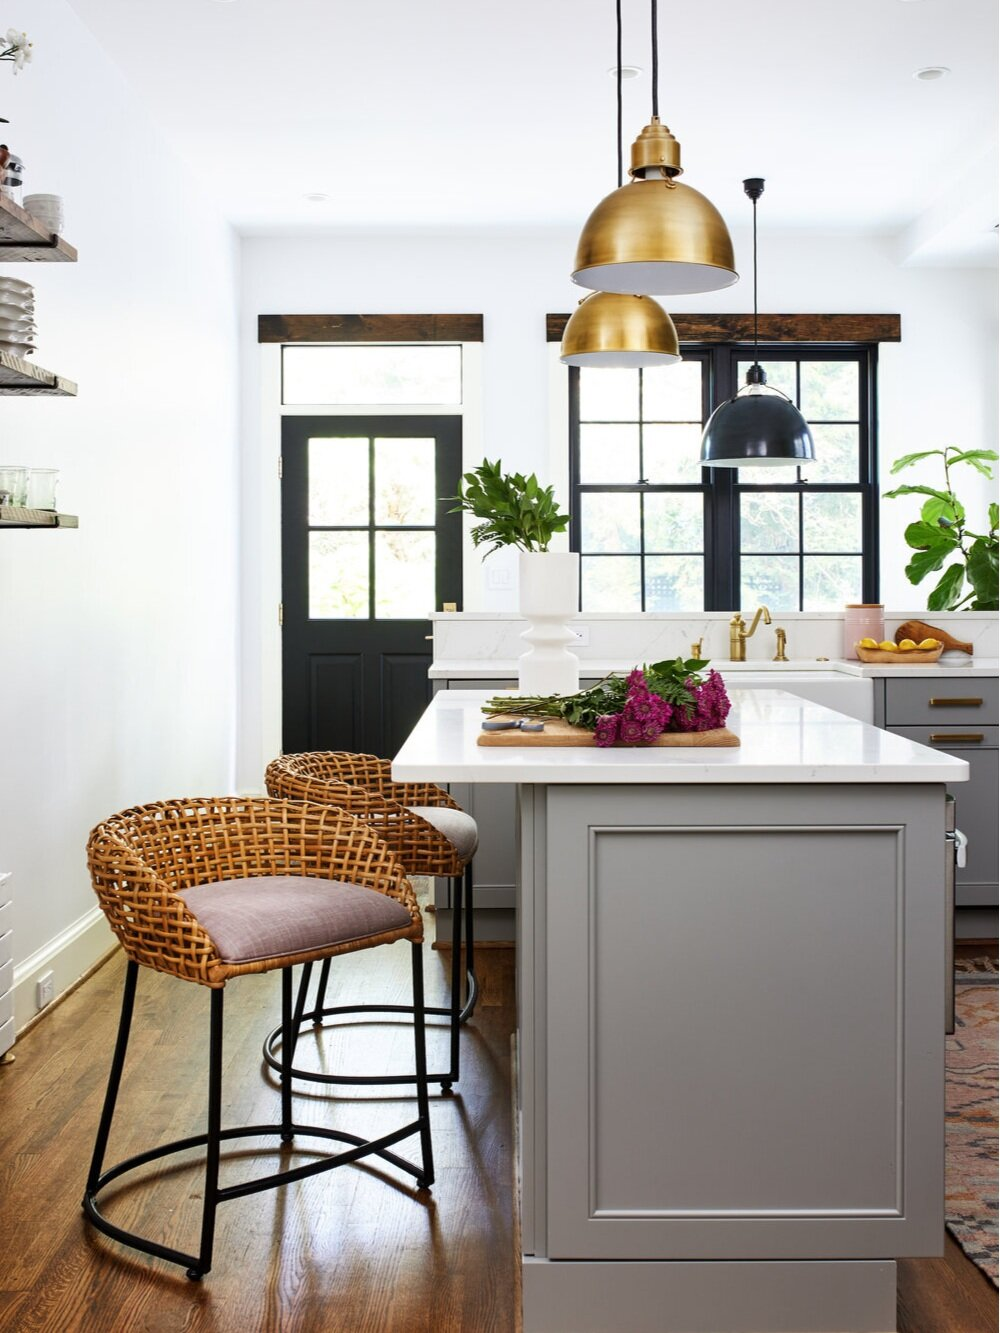 Design by Zoe Feldman Design